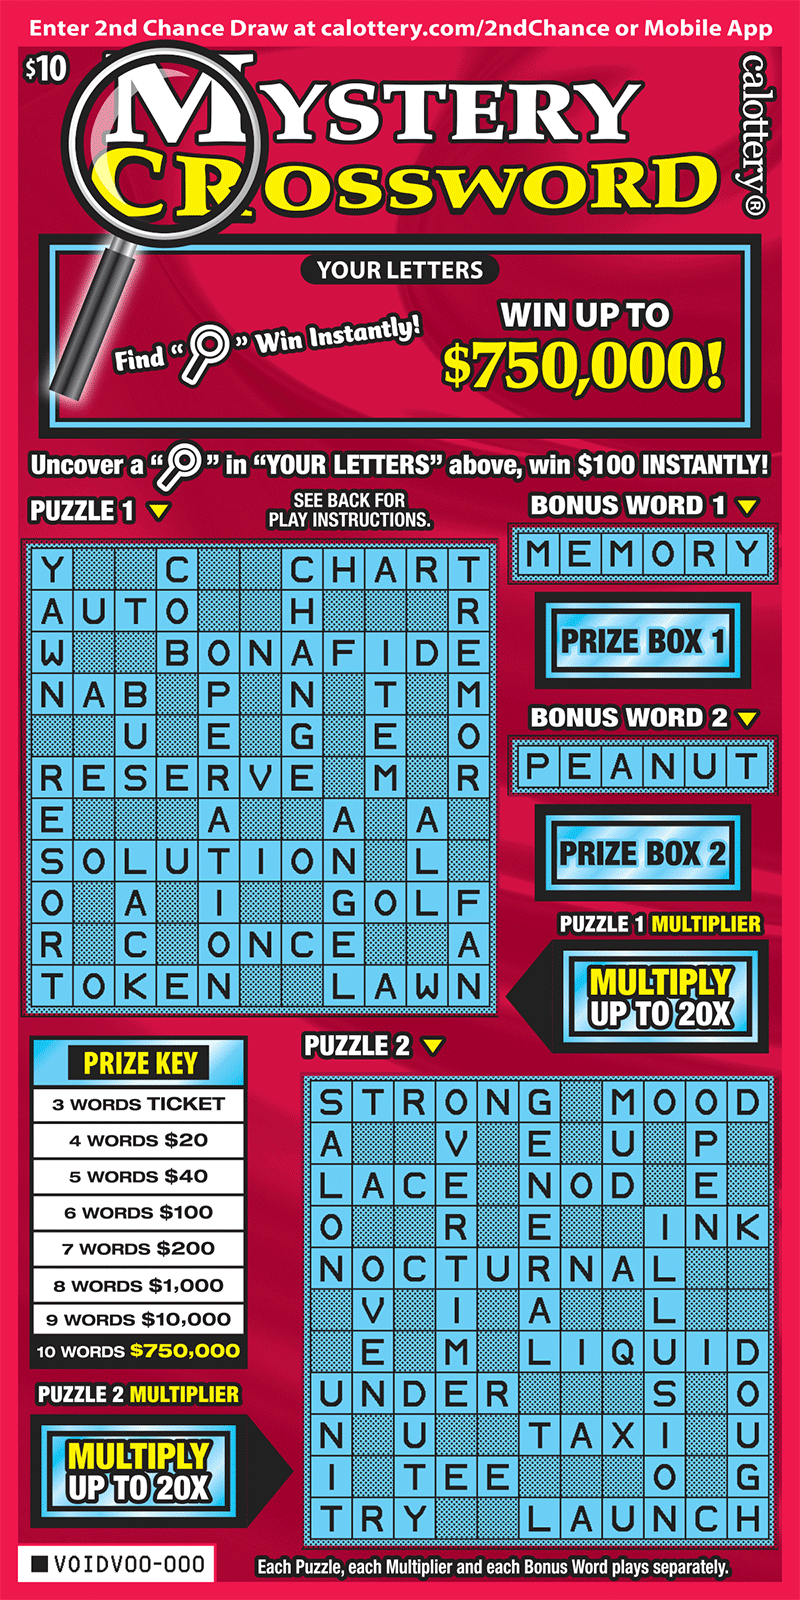 $10 Mystery Crossword unscratched ticket